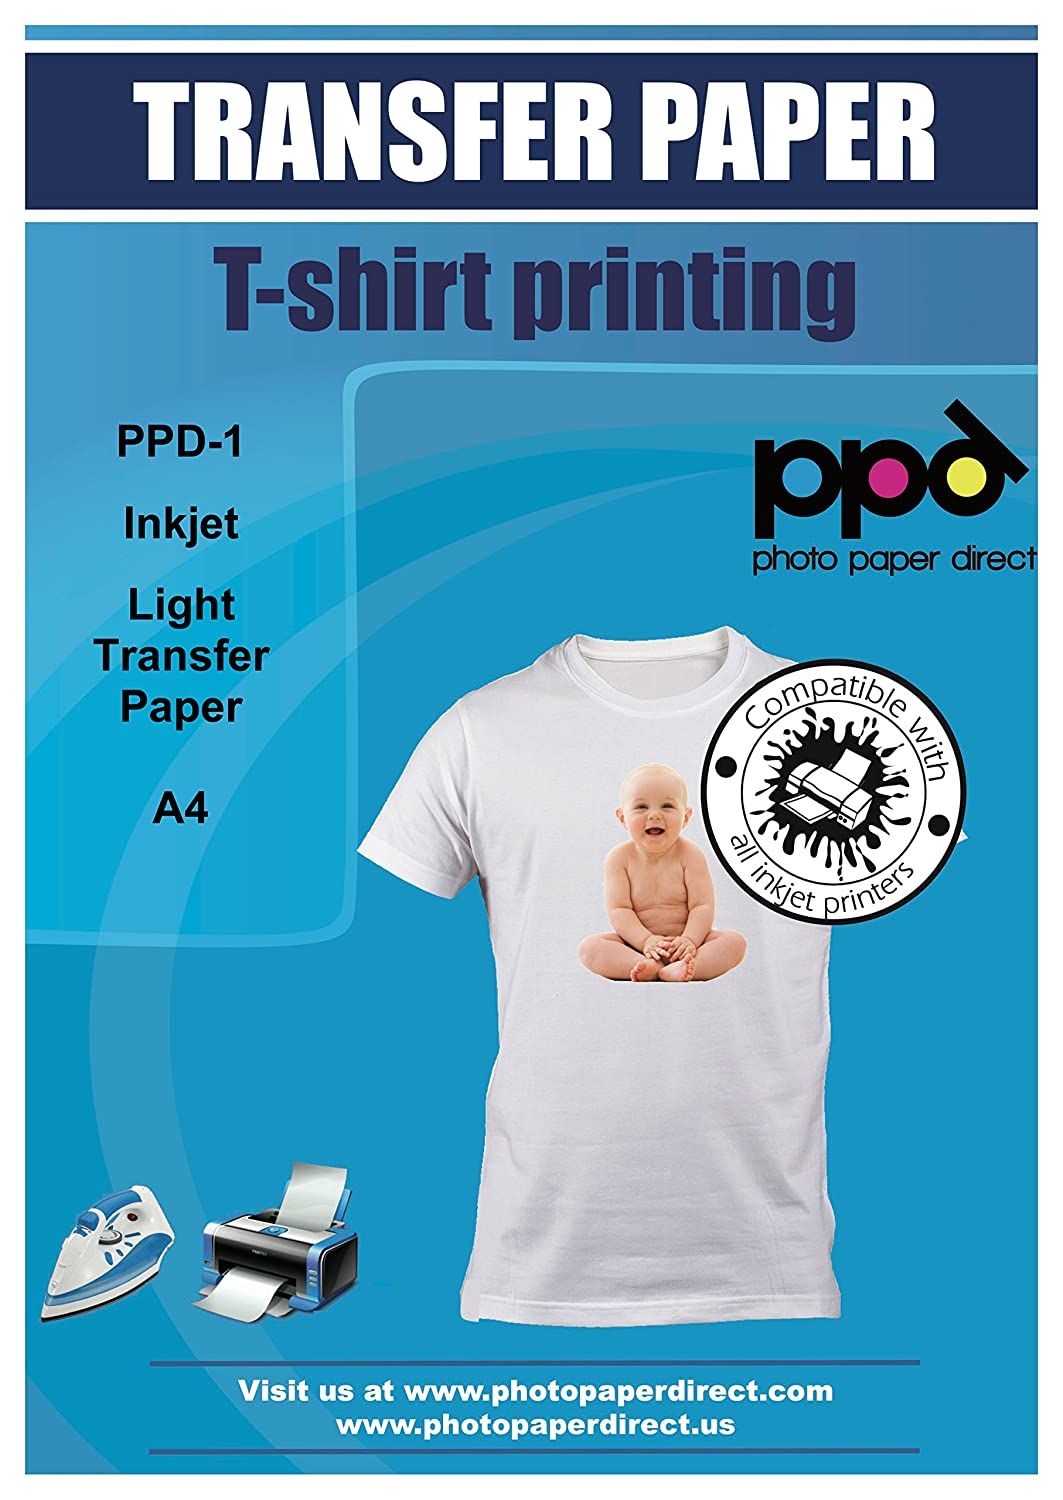 PPD Inkjet Transferpapier zum aufbügeln auf helle T-Shirts, DIN A4, 10 Blatt Photo Paper Direct uk office products M6BQV PPD-1-10